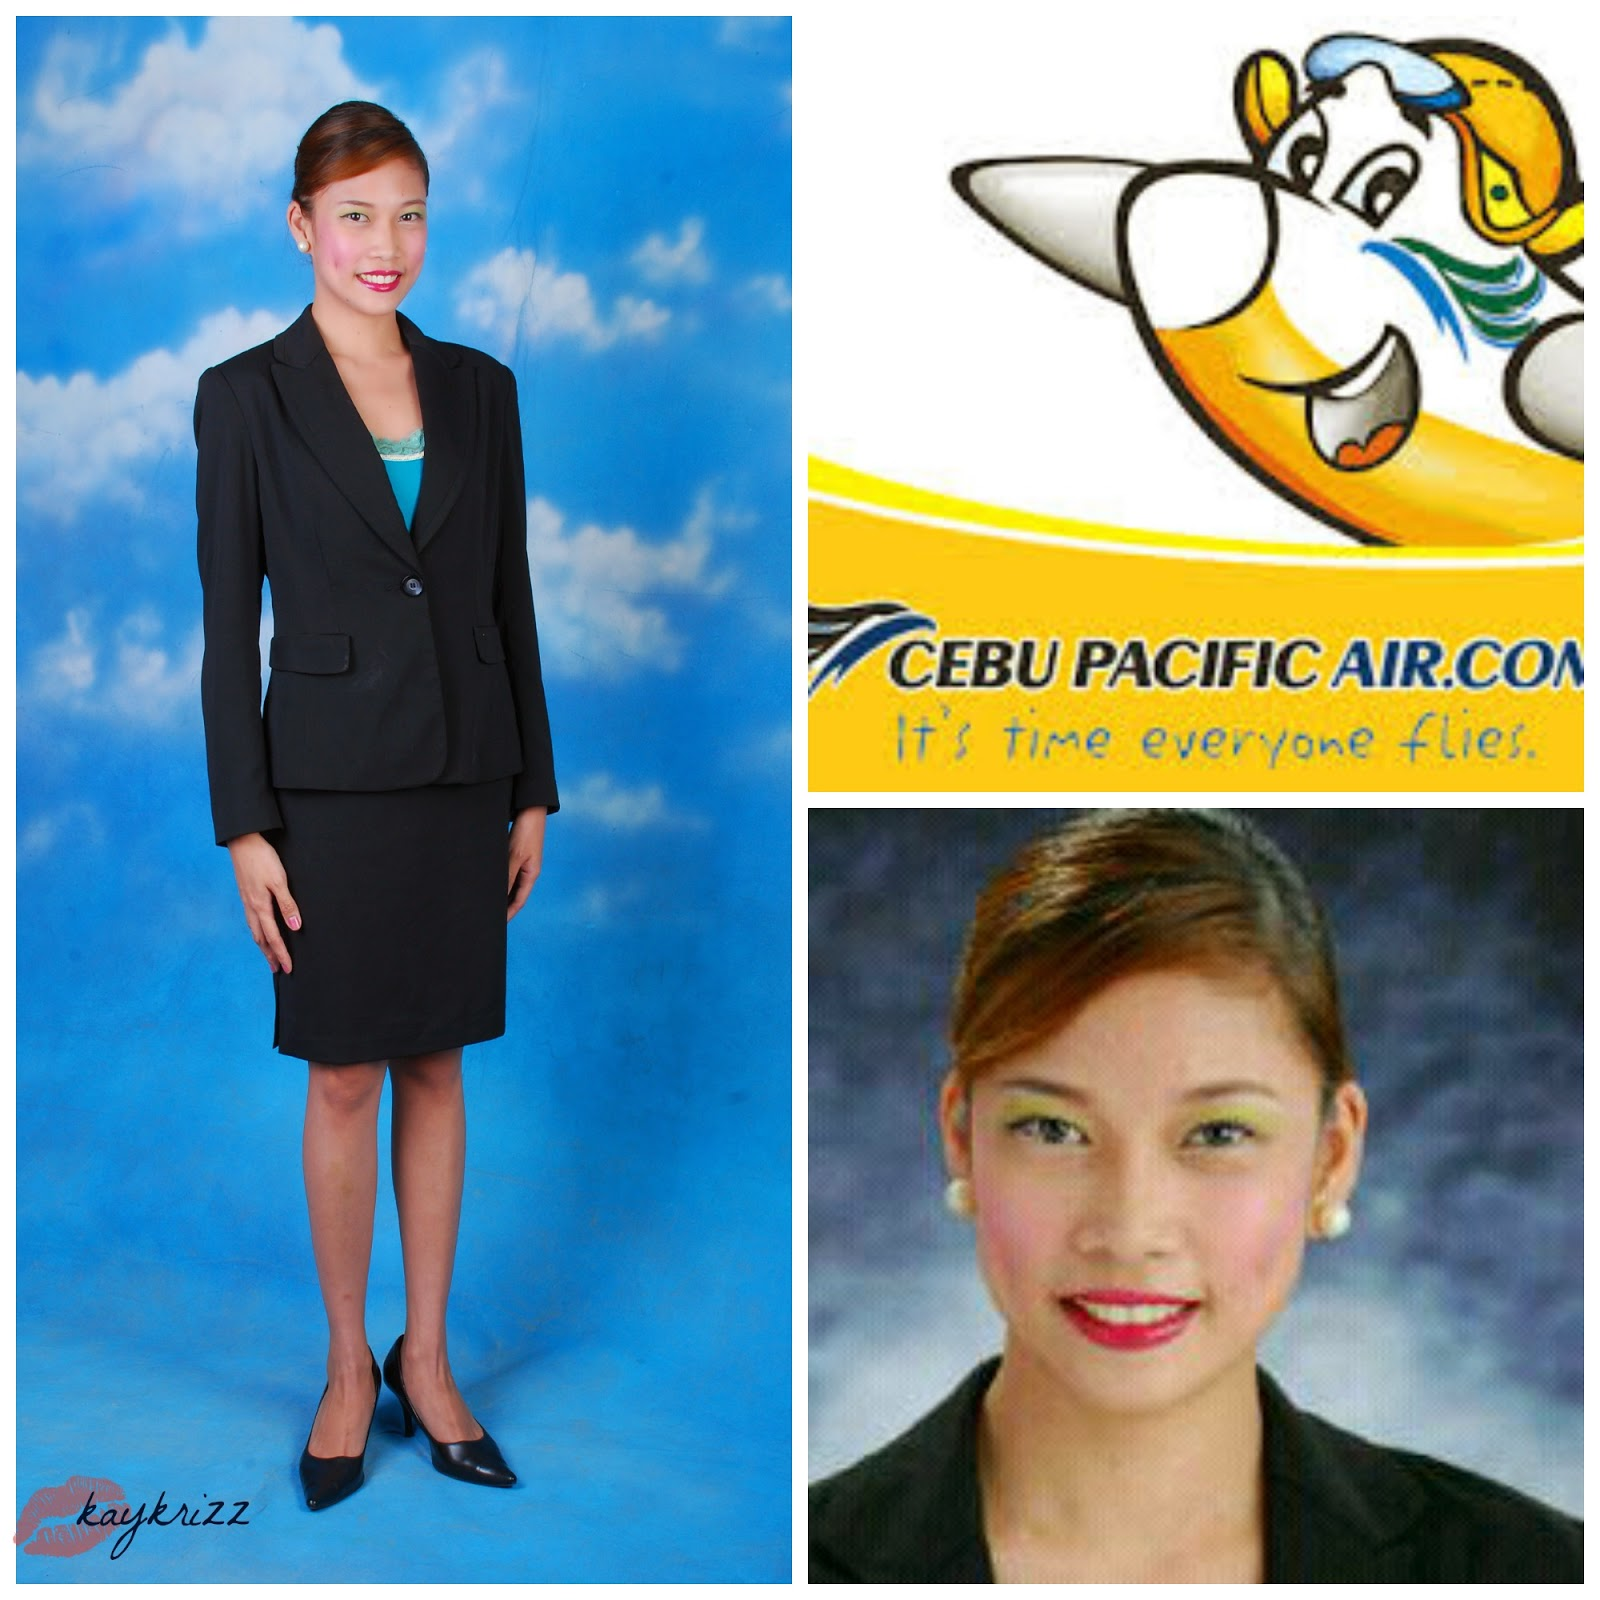 cebu pacific air recruitment experience one day hiring process cebu pacific air recruitment experience one day hiring process